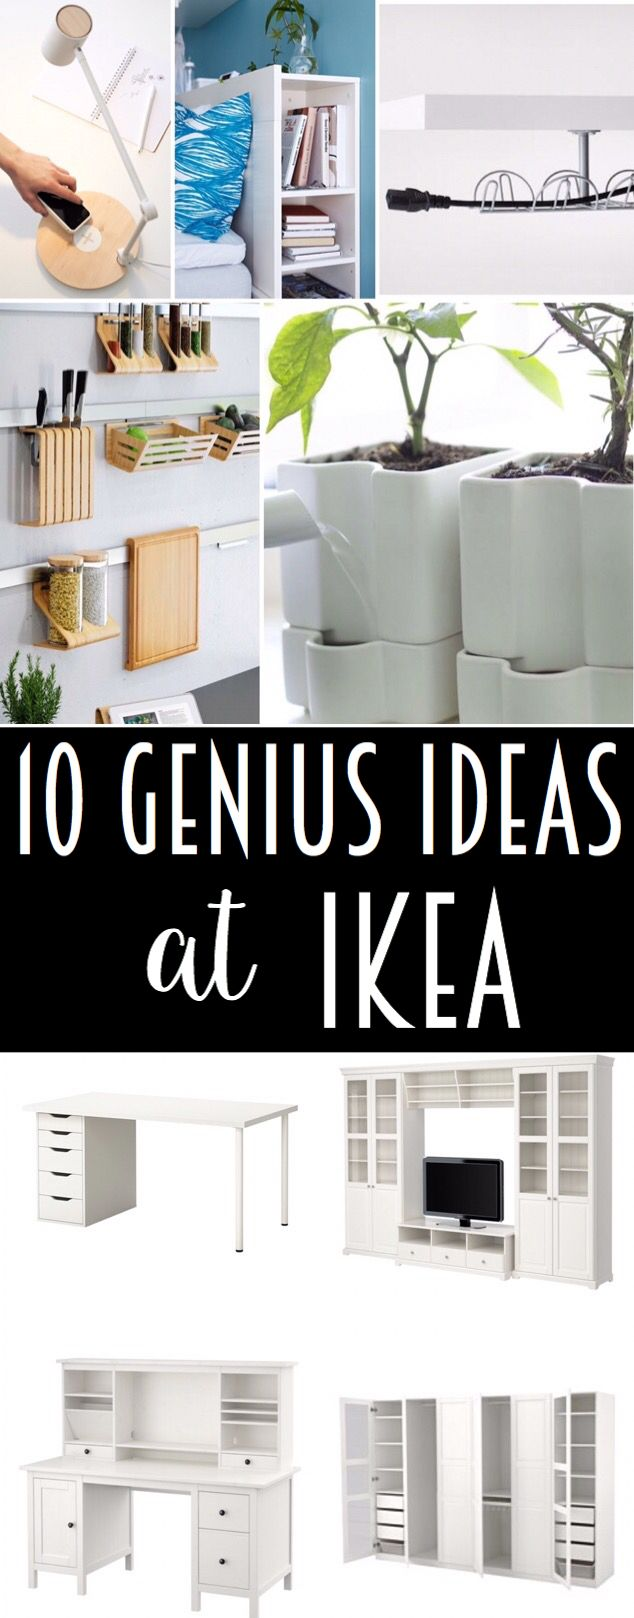 Check out this article for 10 genius organization hacks and ideas at IKEA! Whether you are working on your bedroom, kitchen, living room or an entire apartment or office this article is packed with great ideas. #ikeahacks #ikeabedroom #kitchenorganization #ikeacloset